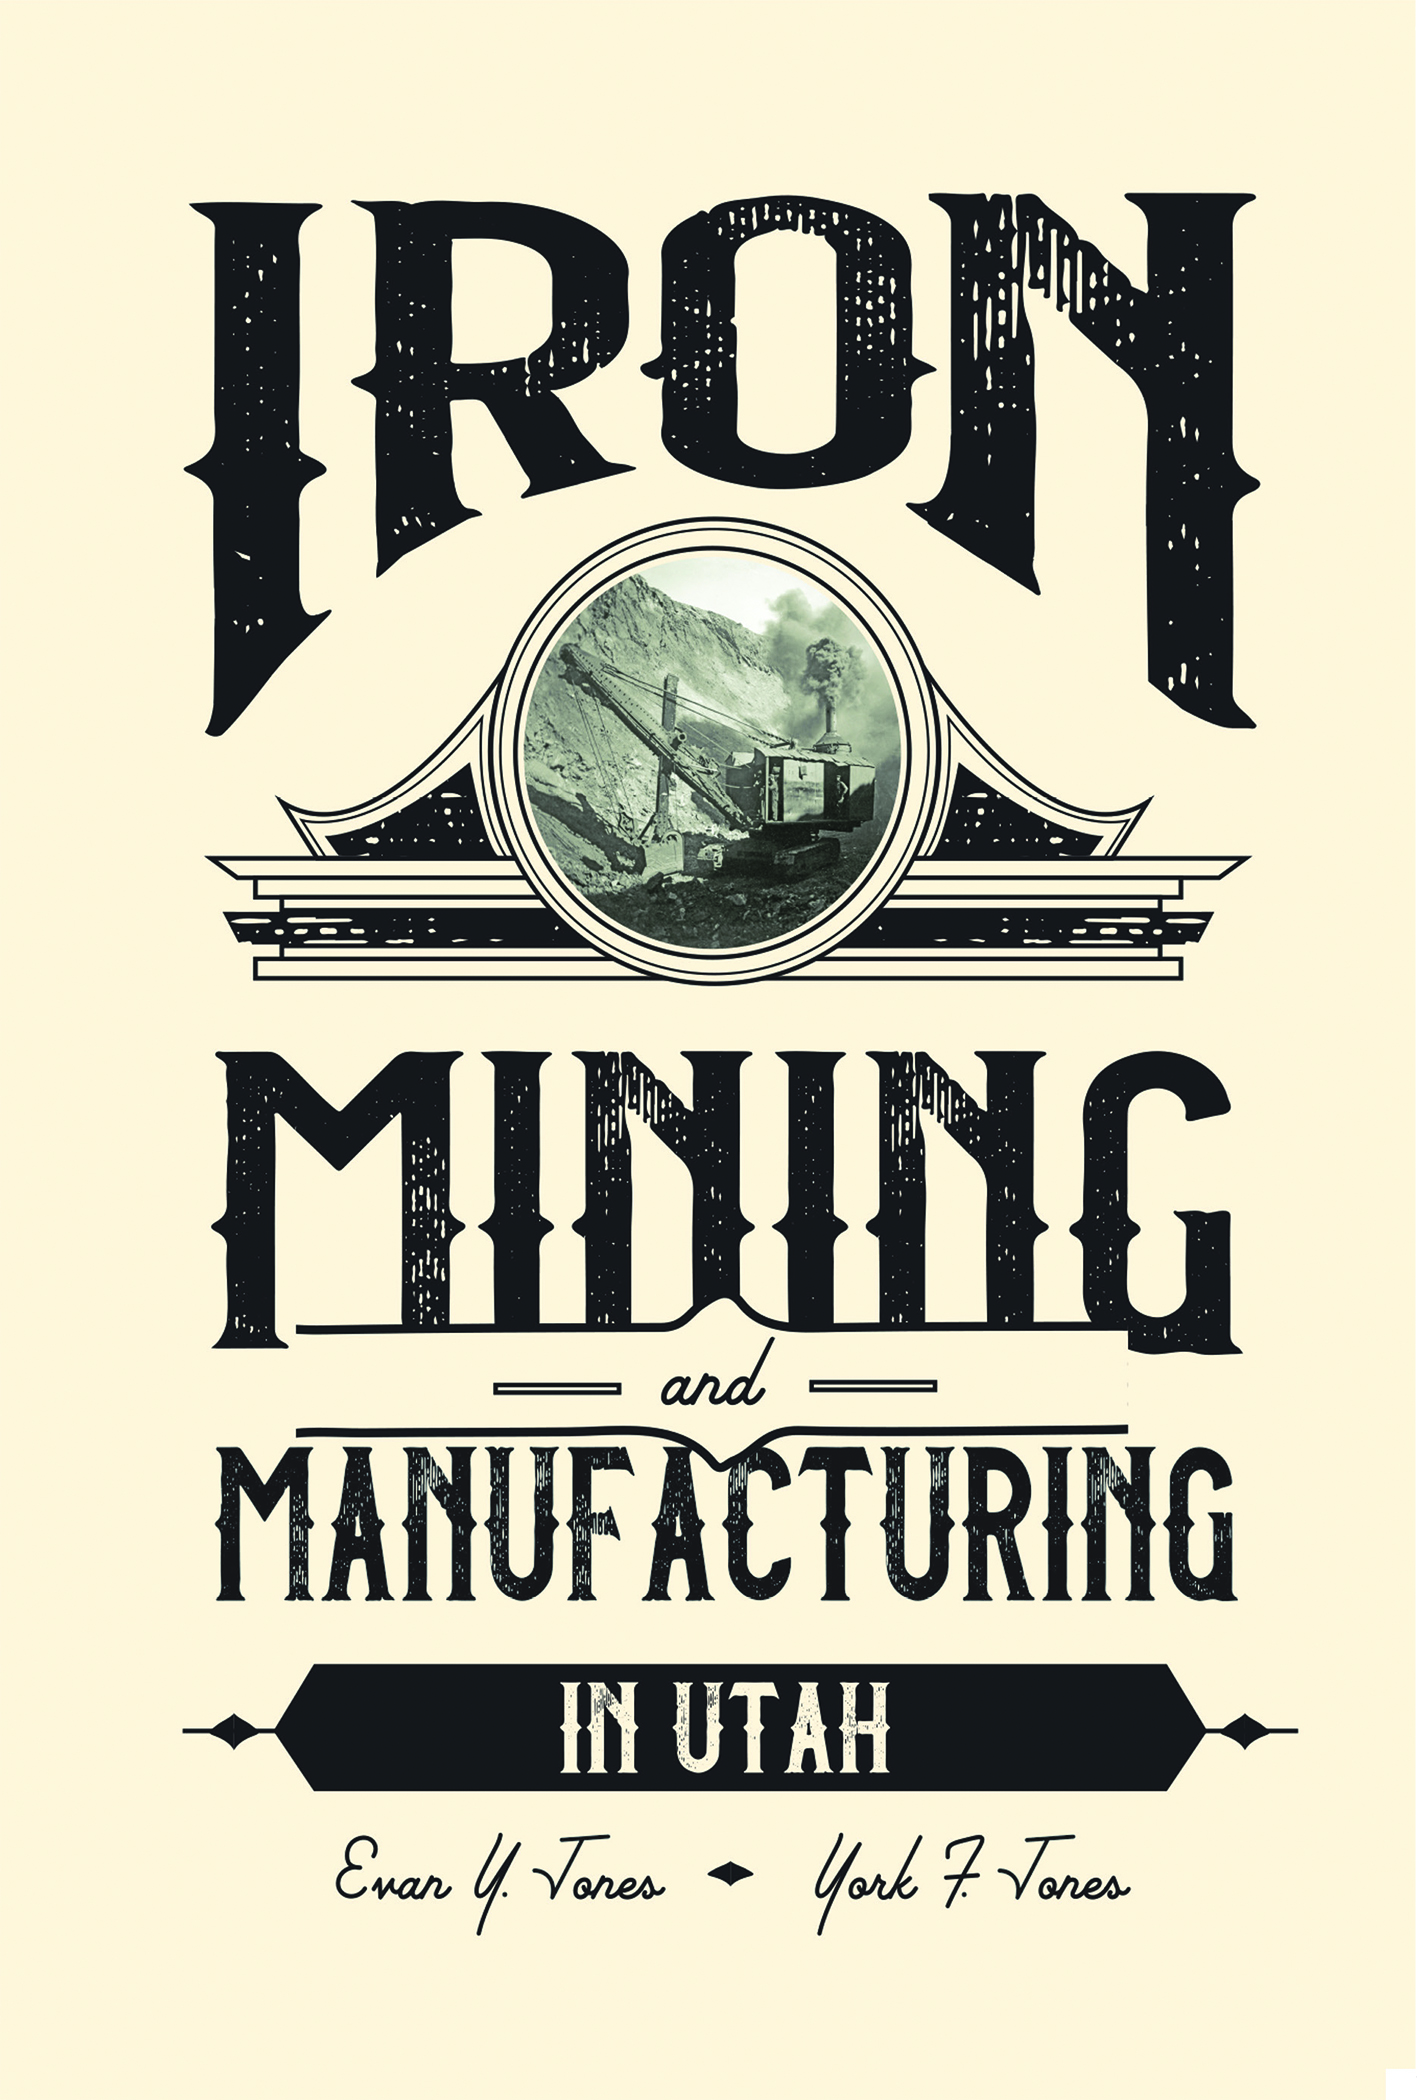 Iron Mining and Manufacturing book cover